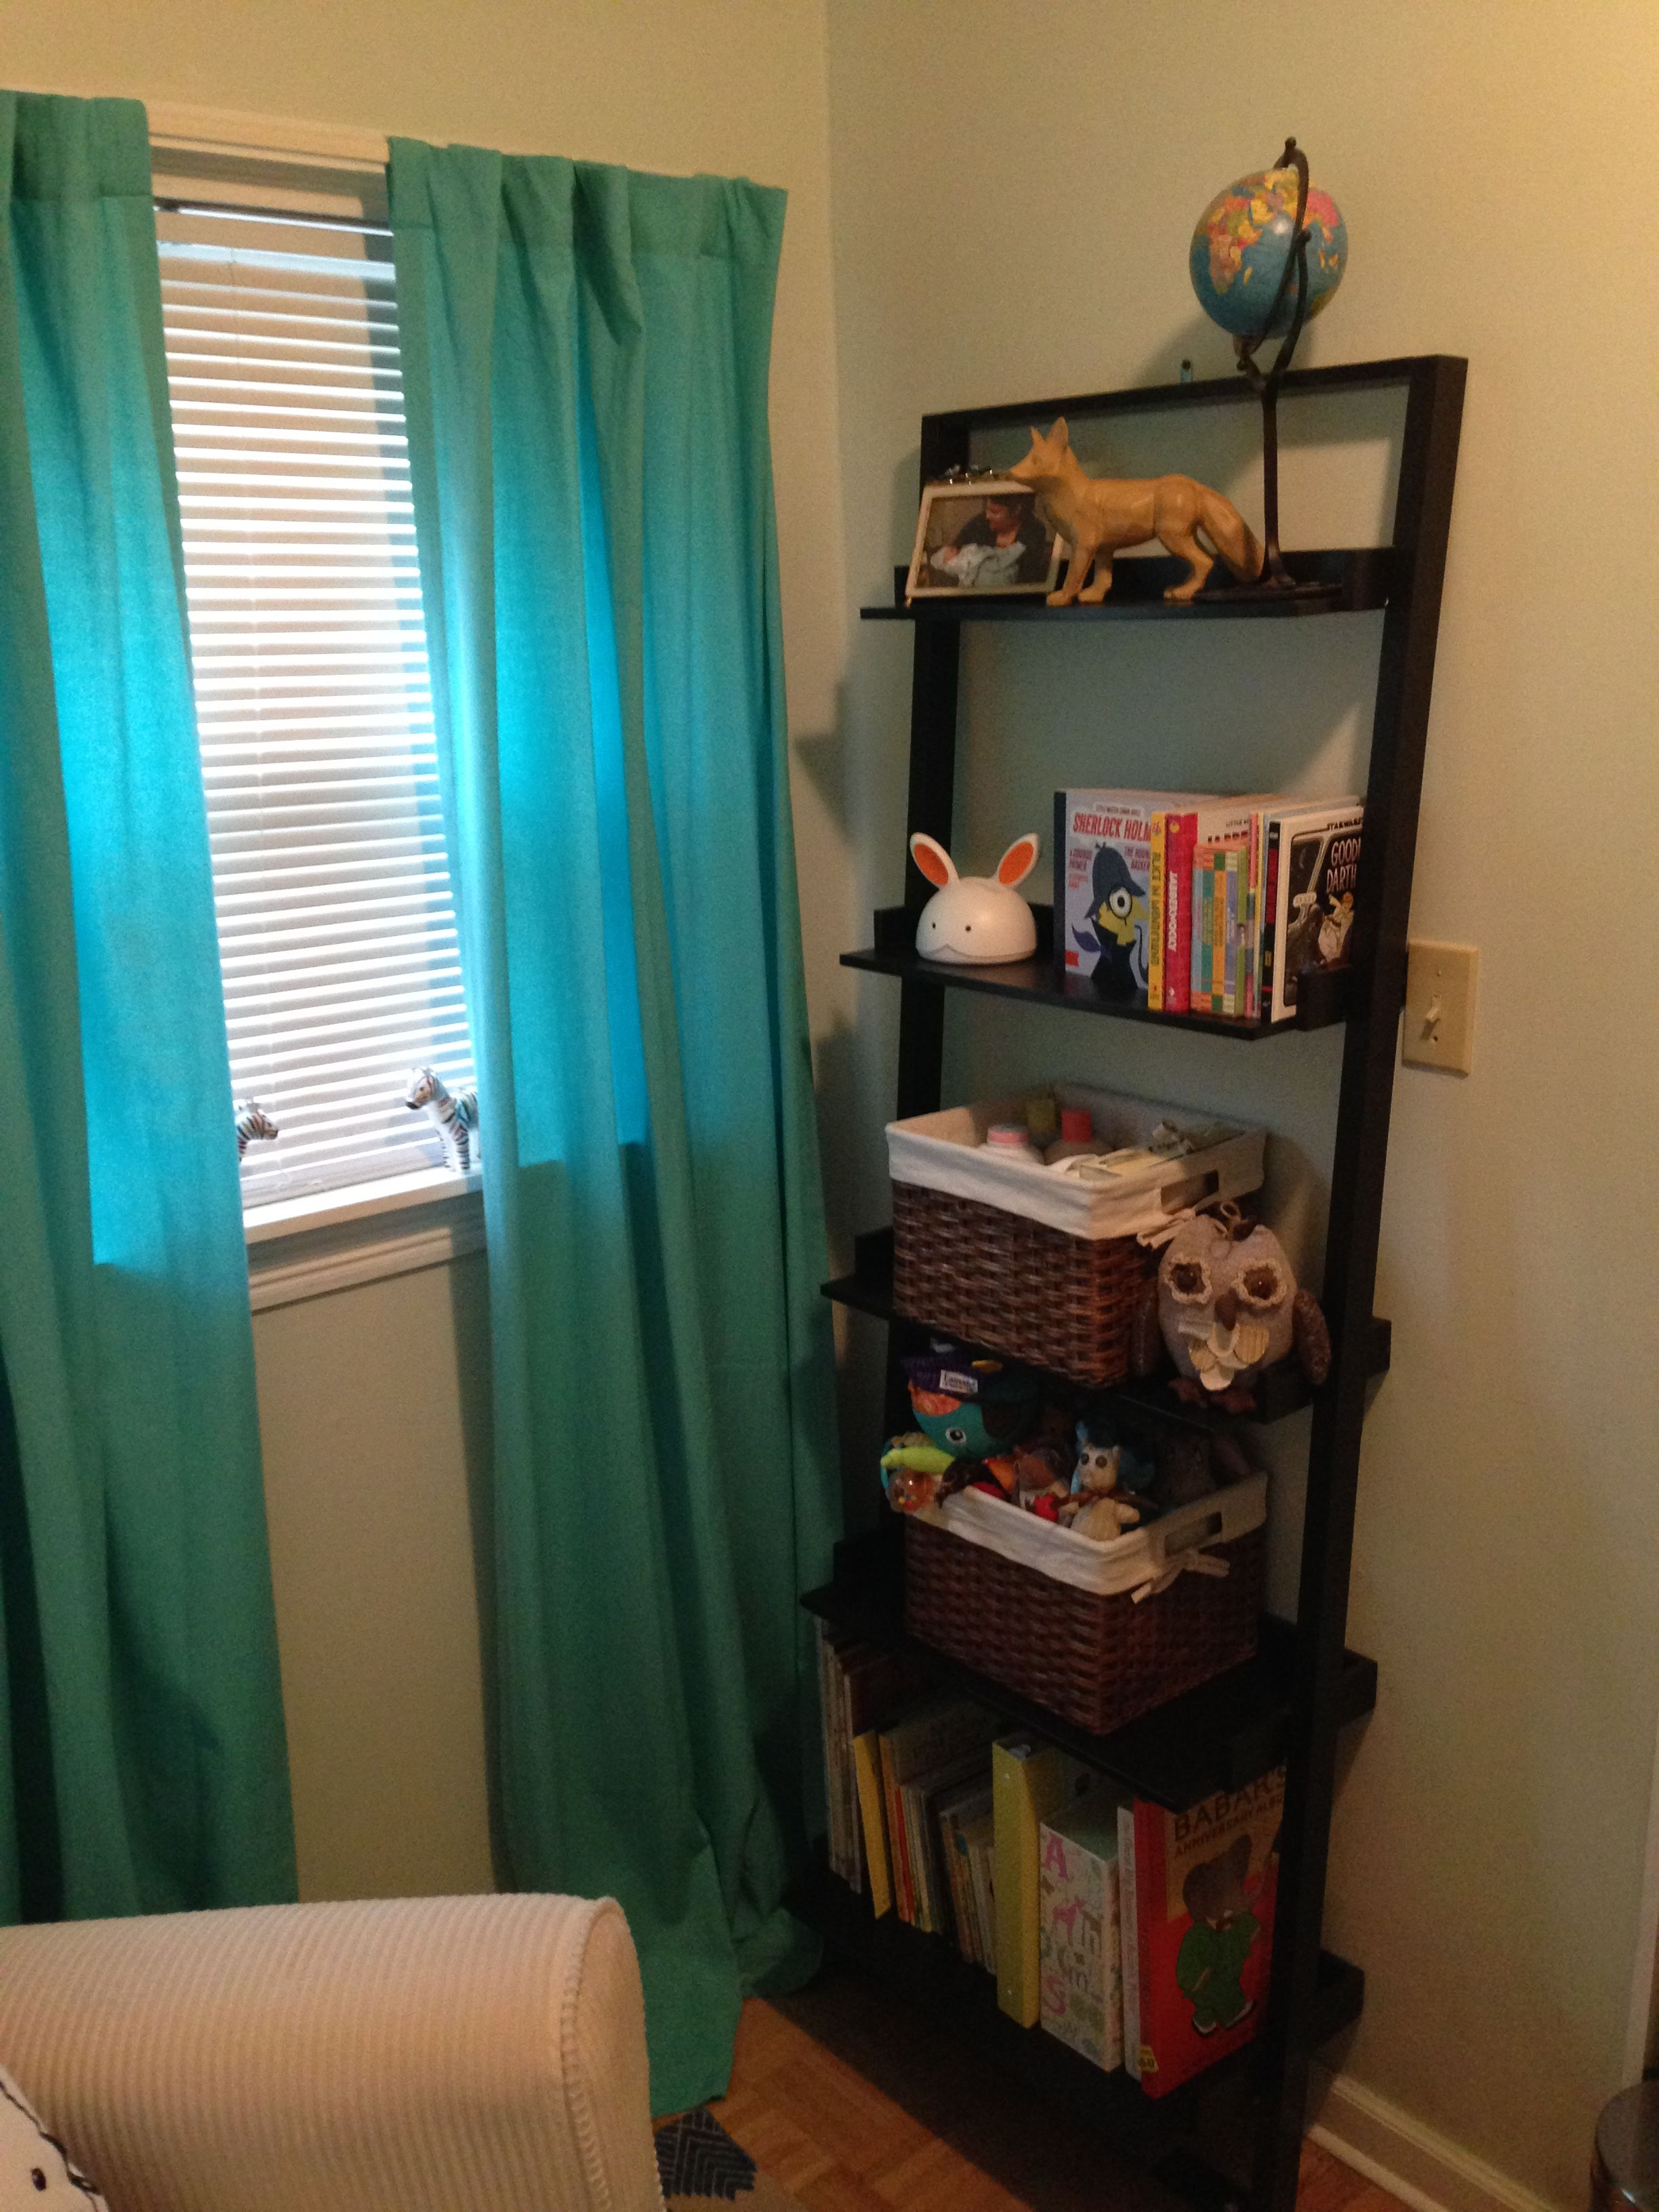 No closet in the nursery ud ladder bookshelf with baskets for bibs